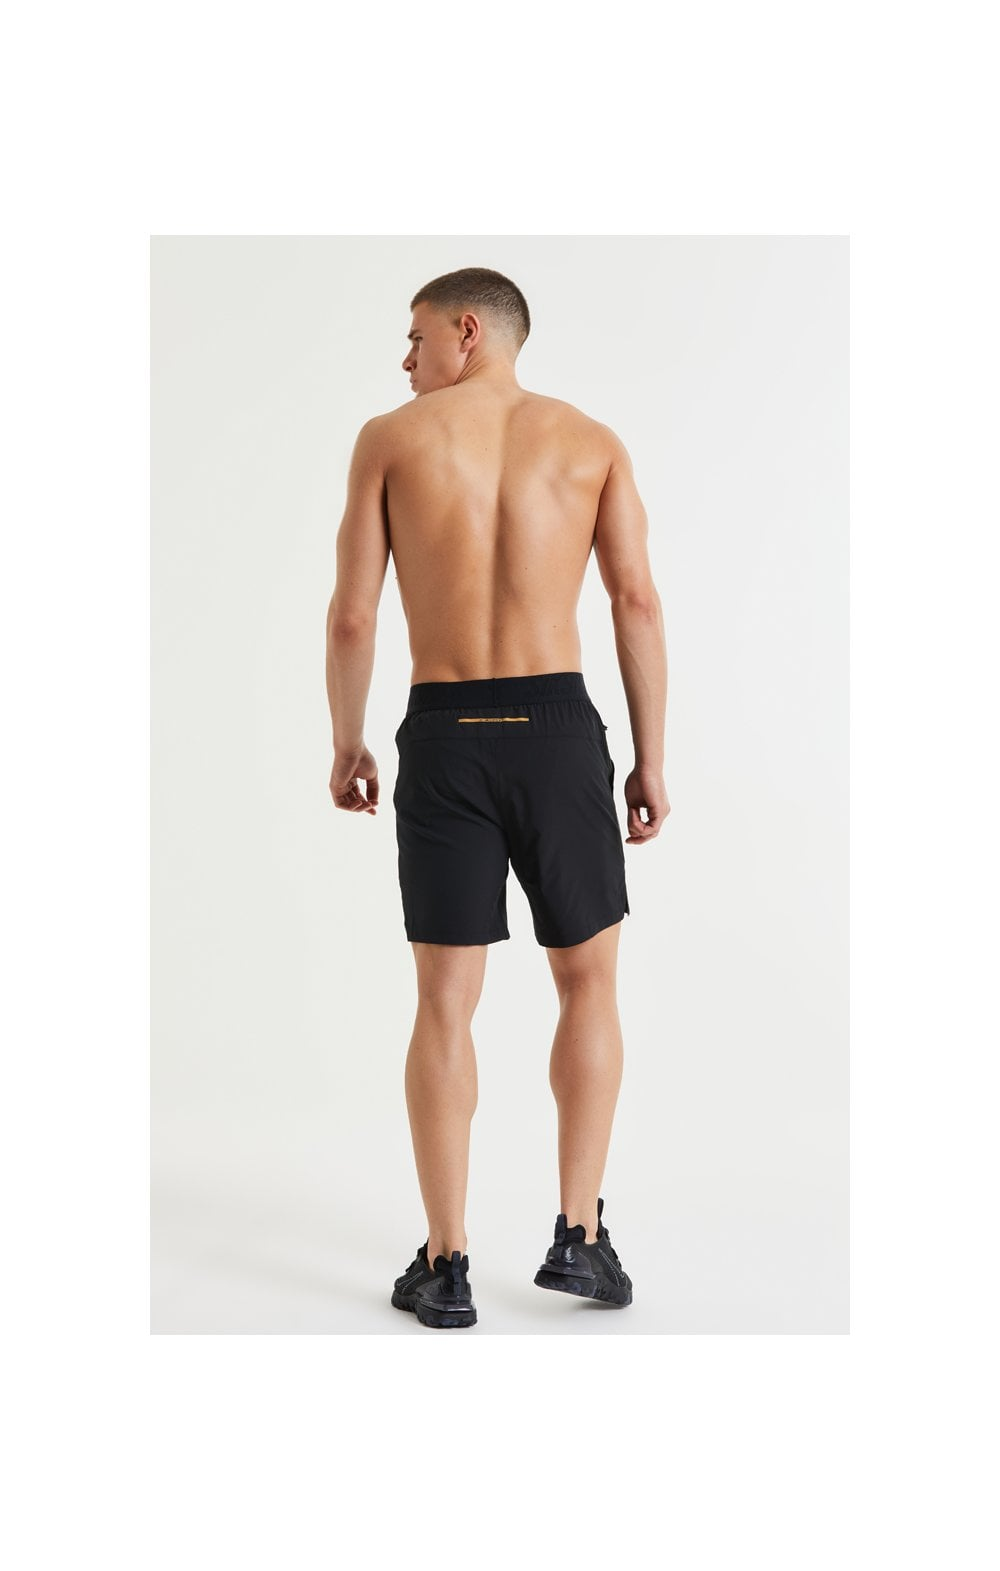 SikSilk Pressure Woven Long Shorts - Black (6)